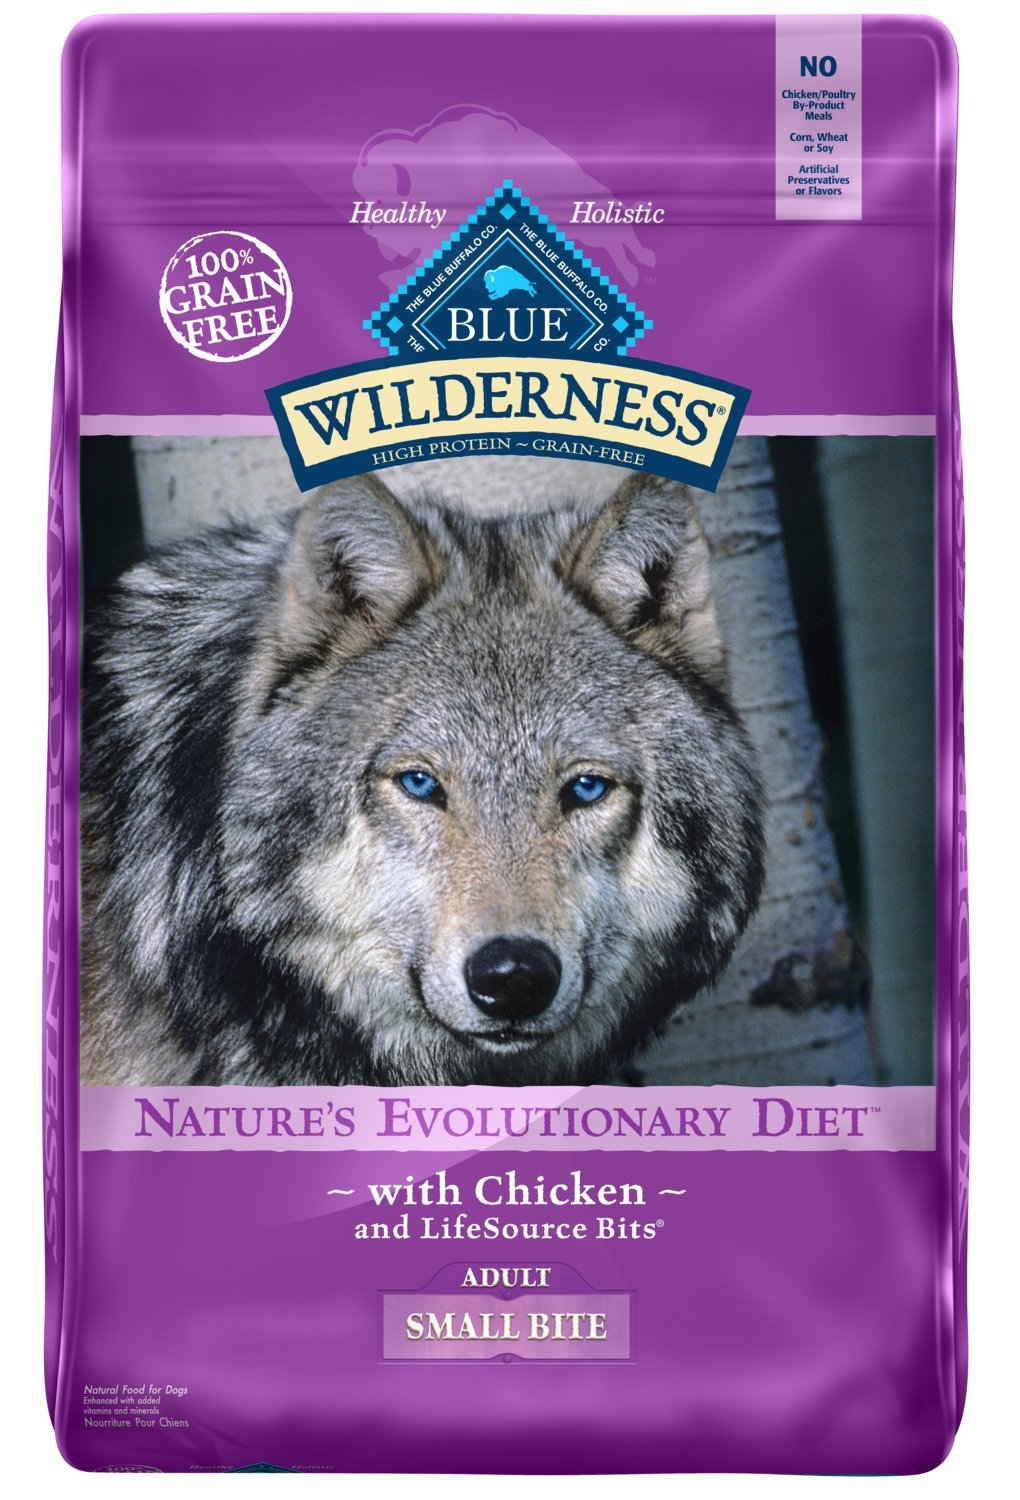 Blue Buffalo Wilderness High Protein Grain Free, Natural Adult Small-Bite Dry Dog Food, Chicken 24-lb by Blue Buffalo